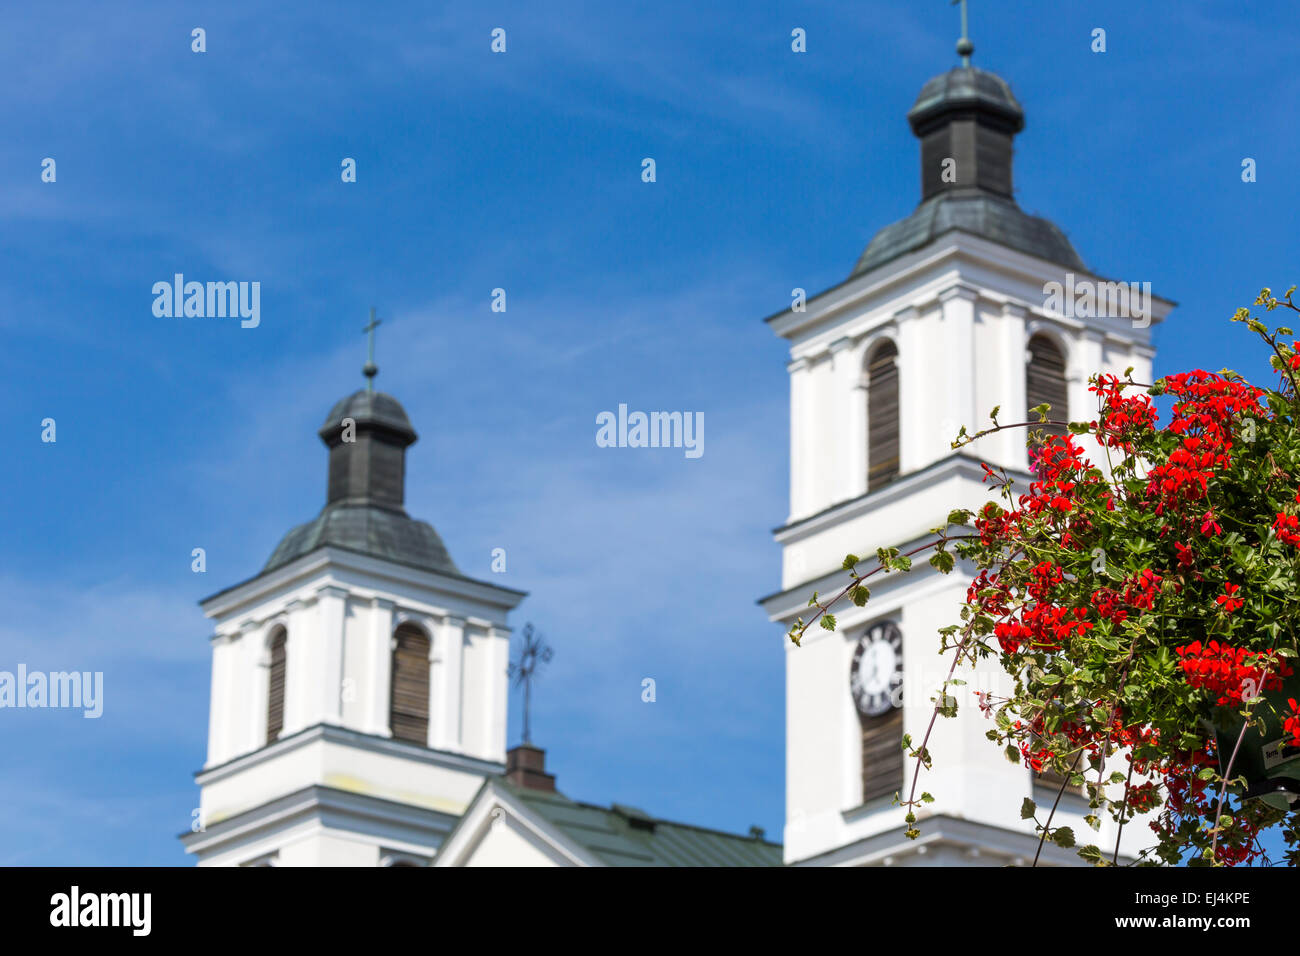 Church of St. Alexander in Suwalki. Poland Stock Photo